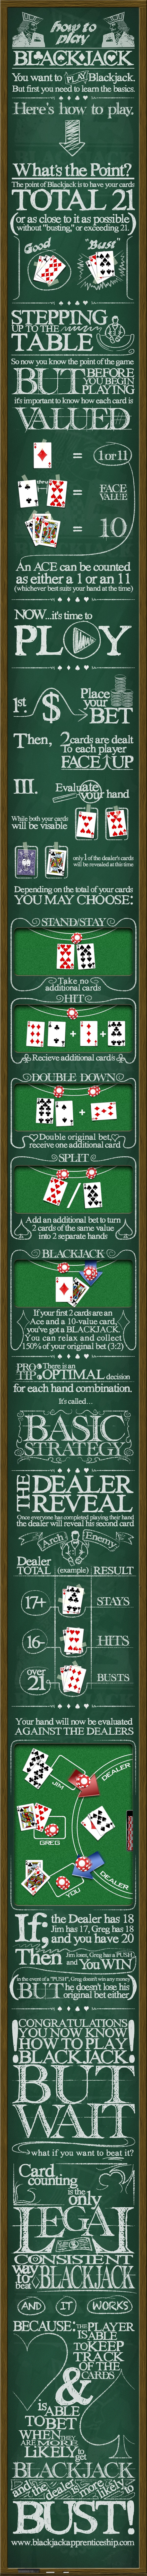 how-to-play-and-win-black-jack_50e5e25f06f20